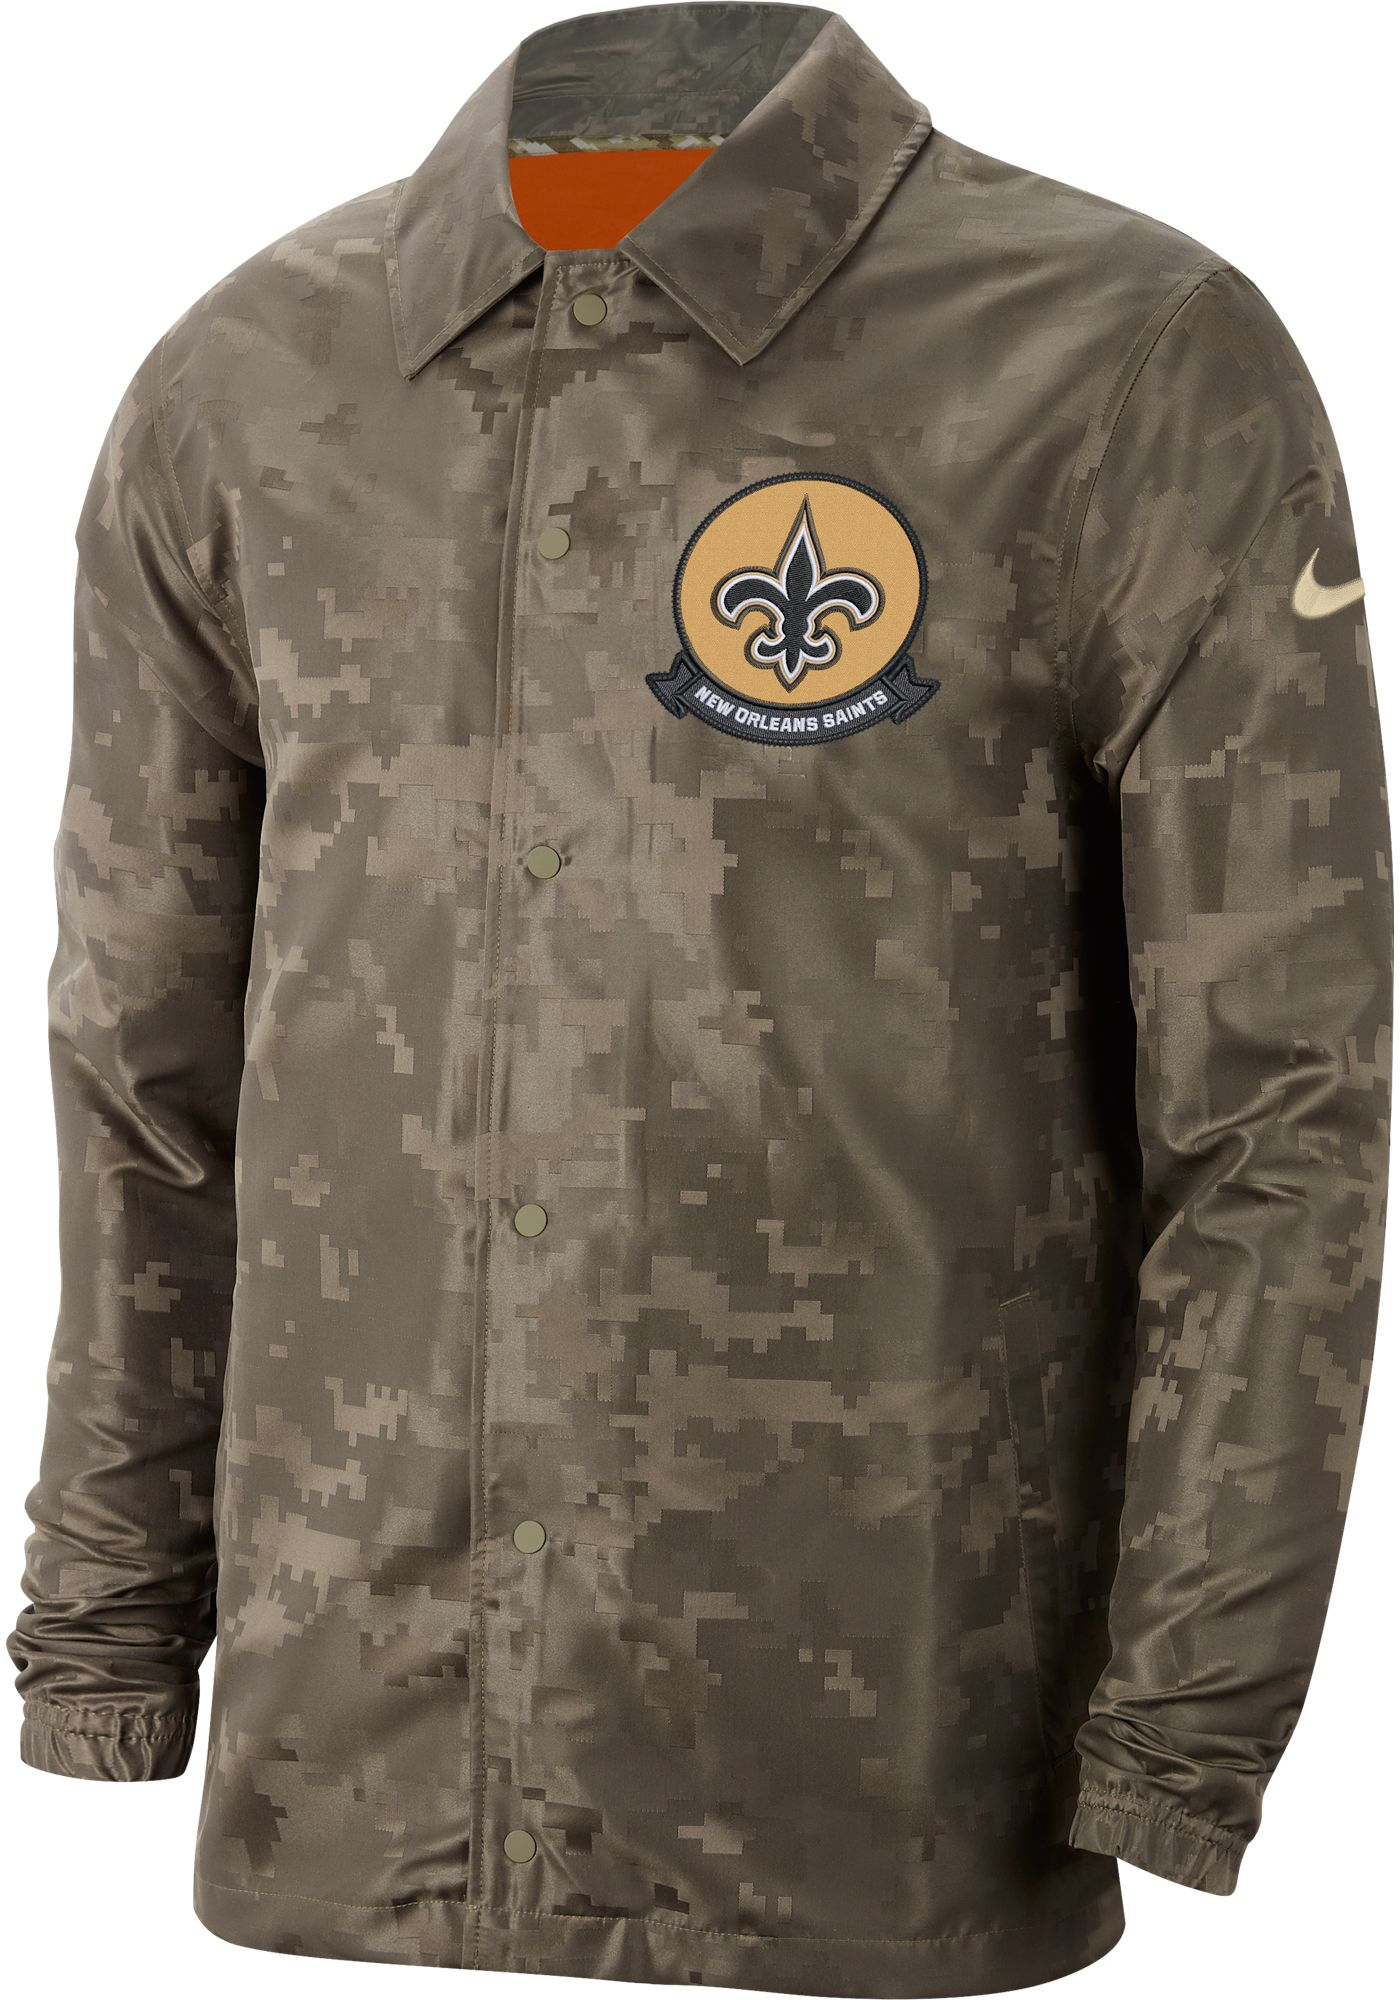 Nike Men's Salute to Service New Orleans Saints Olive Lightweight Camo Jacket